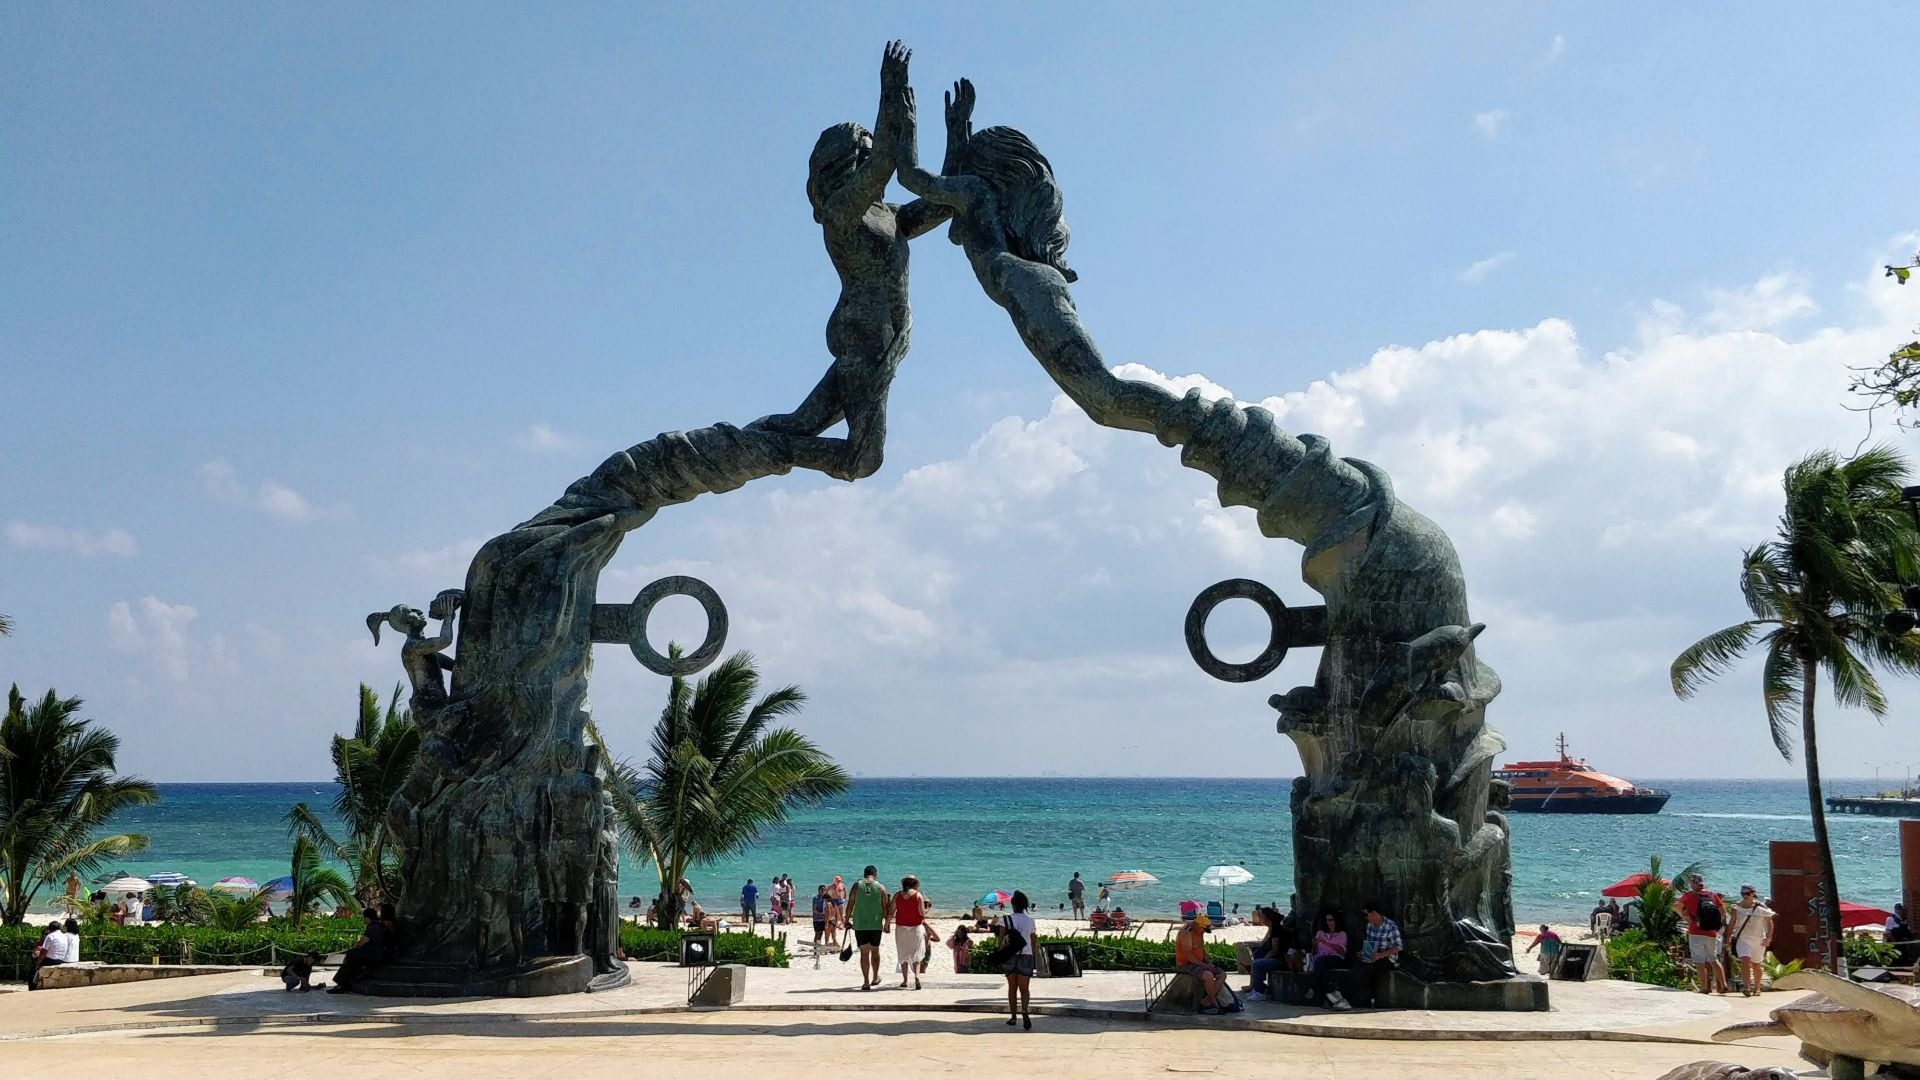 5 Days in Playa del Carmen, Mexico: What to Do, See & Eat